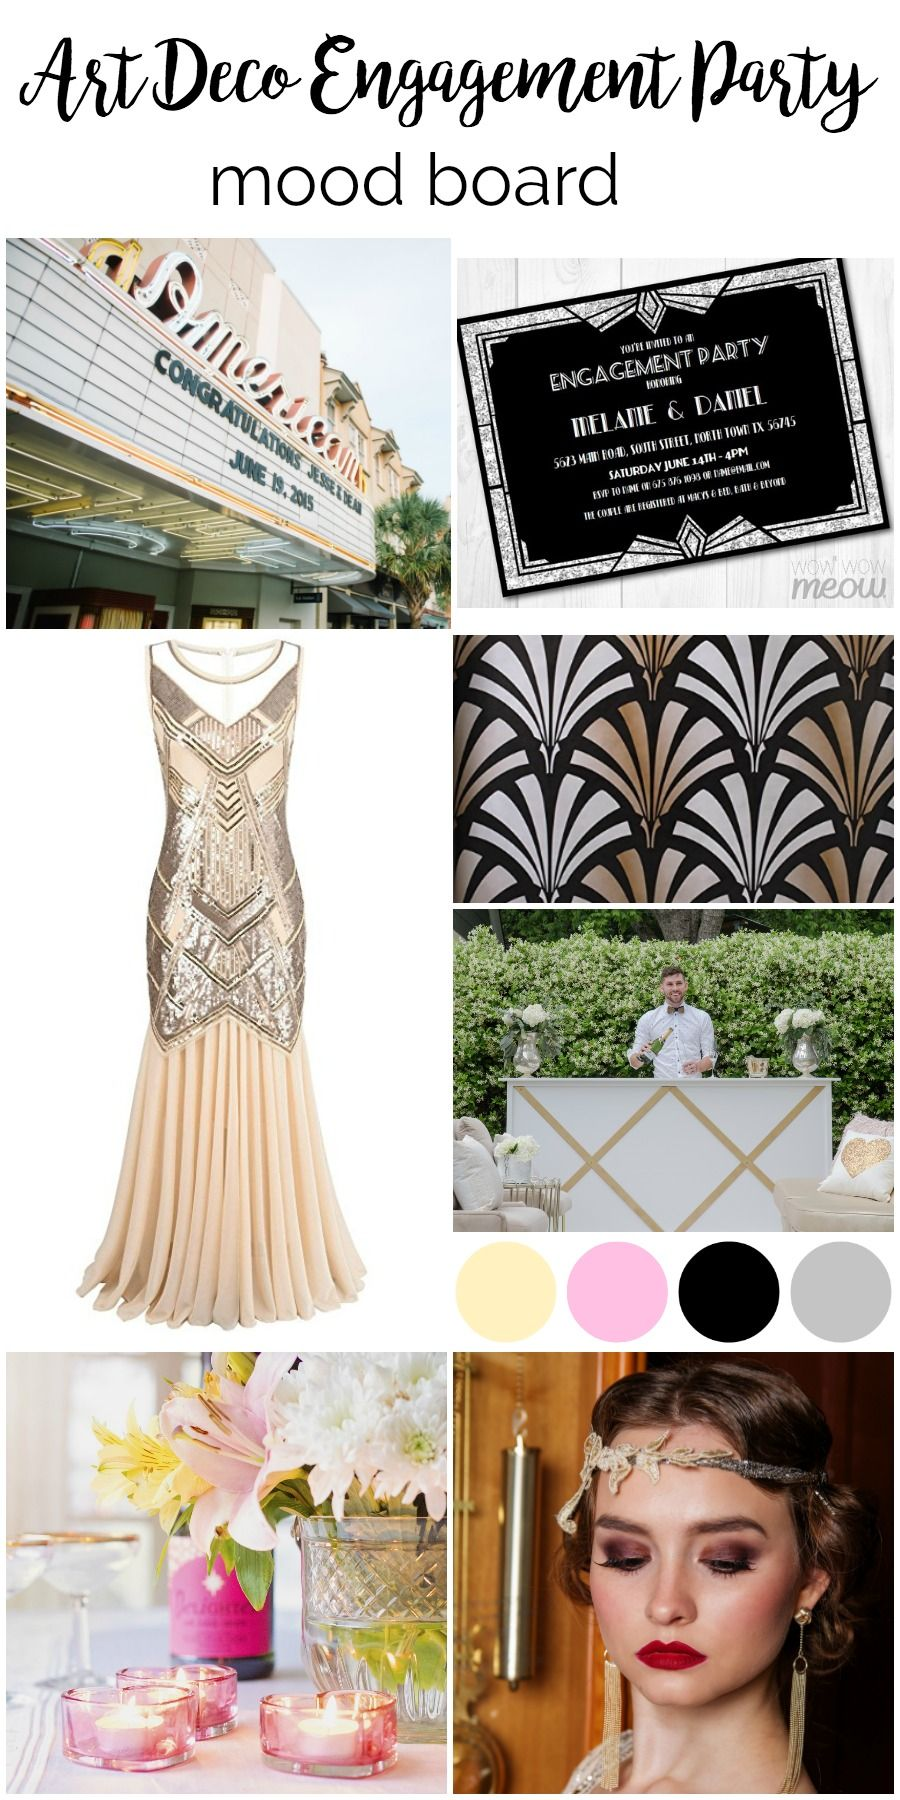 Mood Board Art Deco Vintage Engagement Party